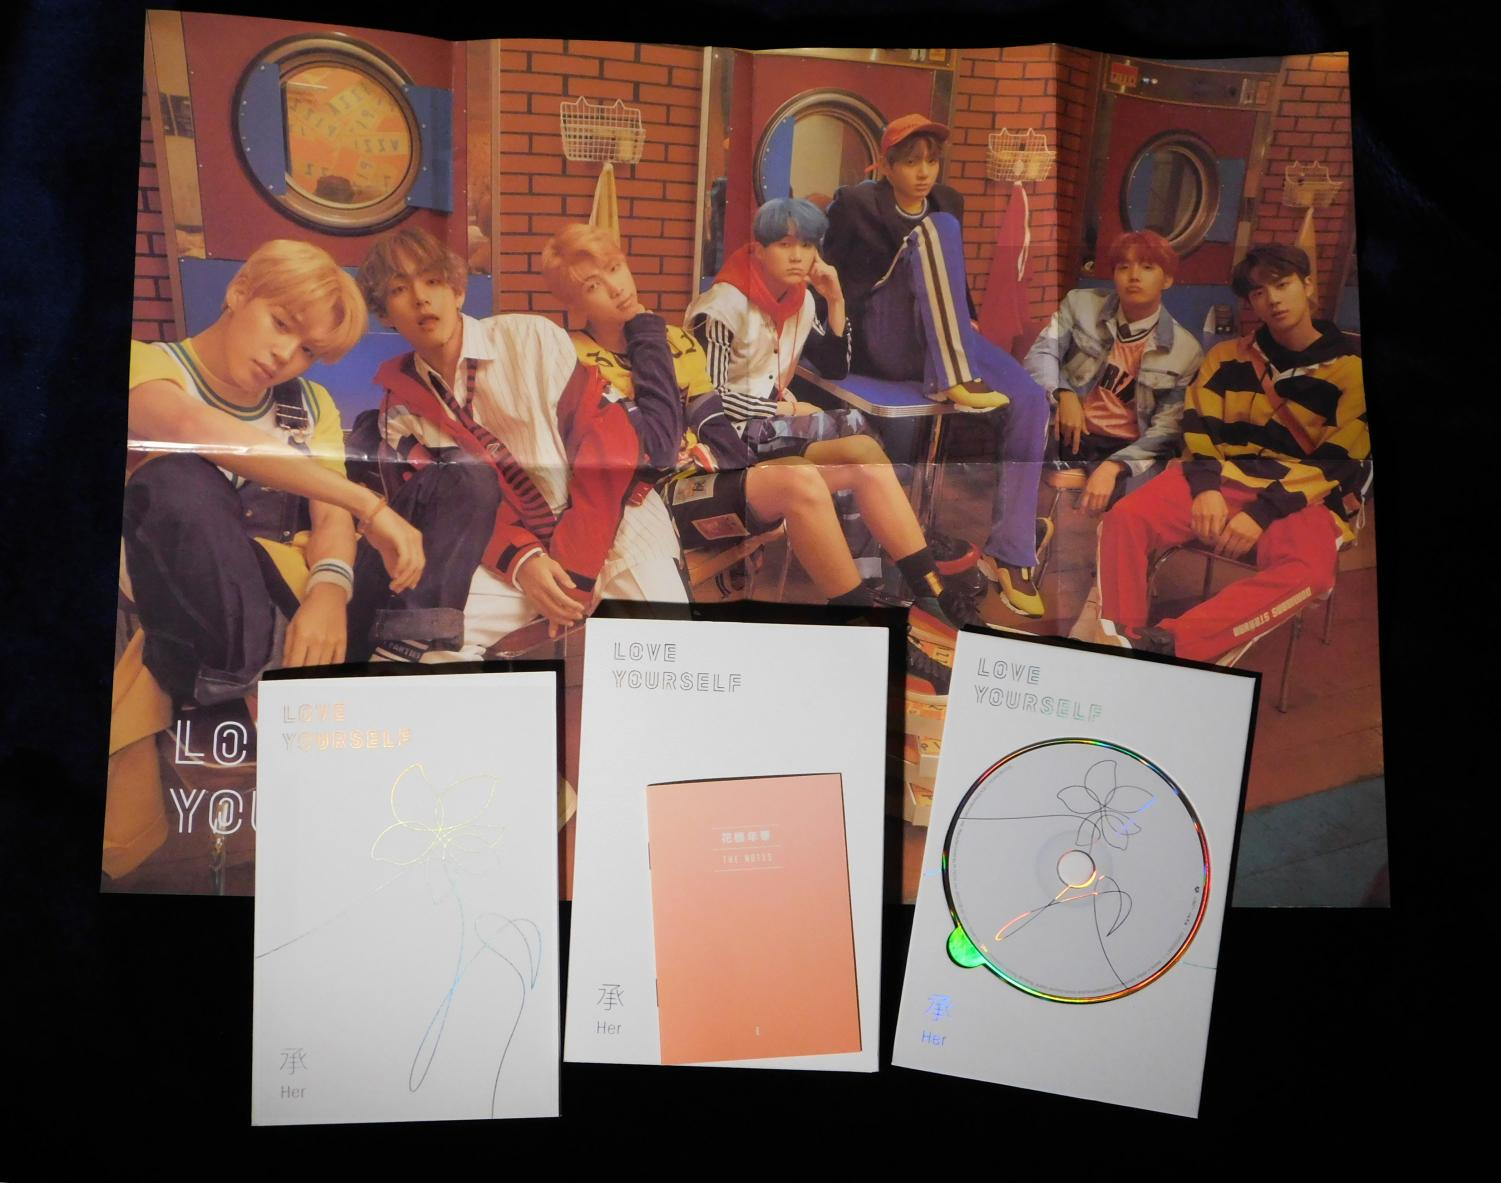 Love Yourself: The physical copy comes with a poster and photo album with two hidden tracks.